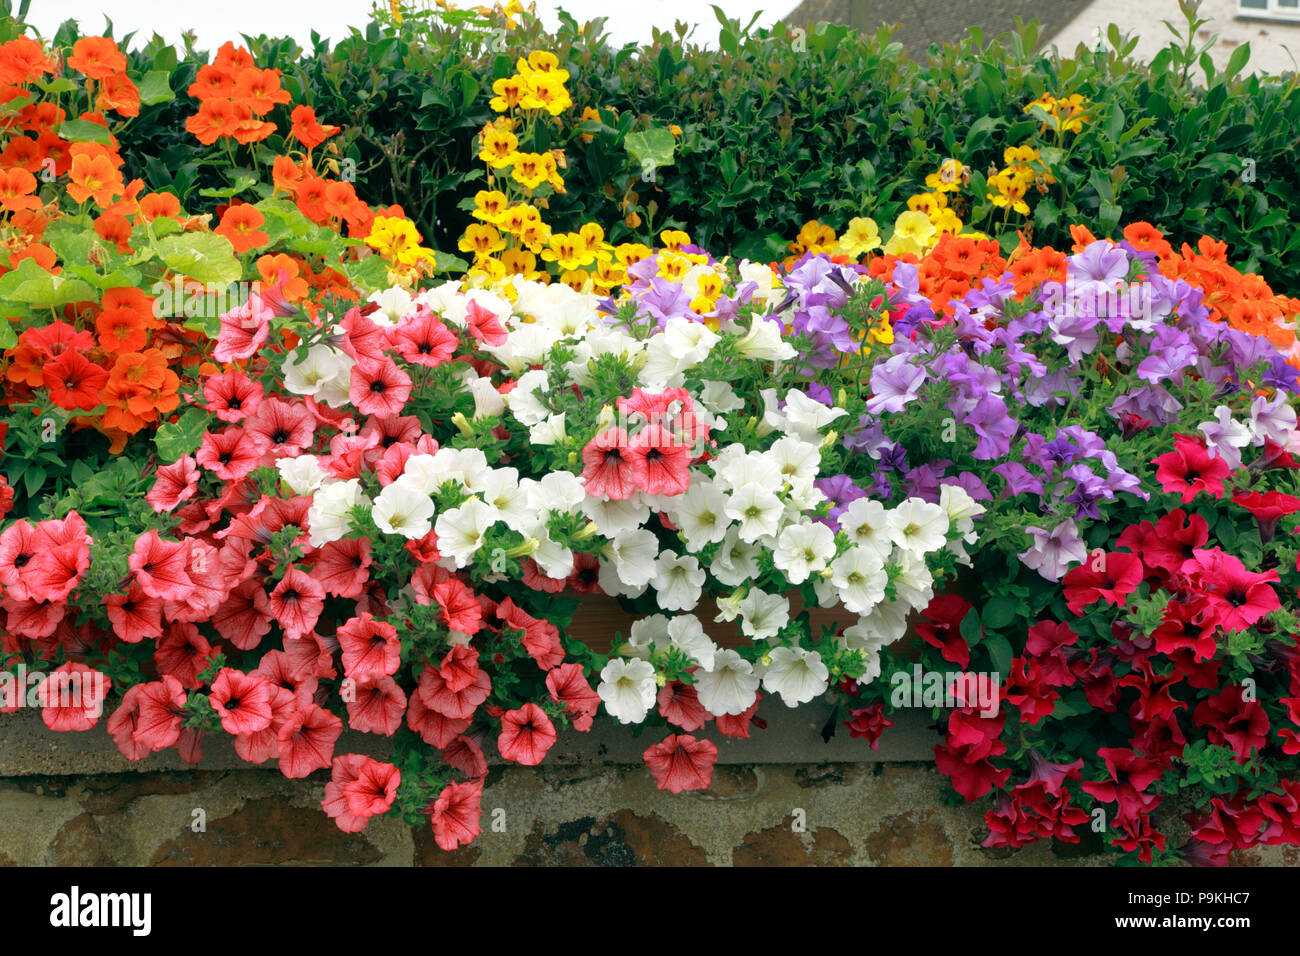 Garden wall, petunias, purple, orange, pink, white, yellow colours, various colours - Stock Image